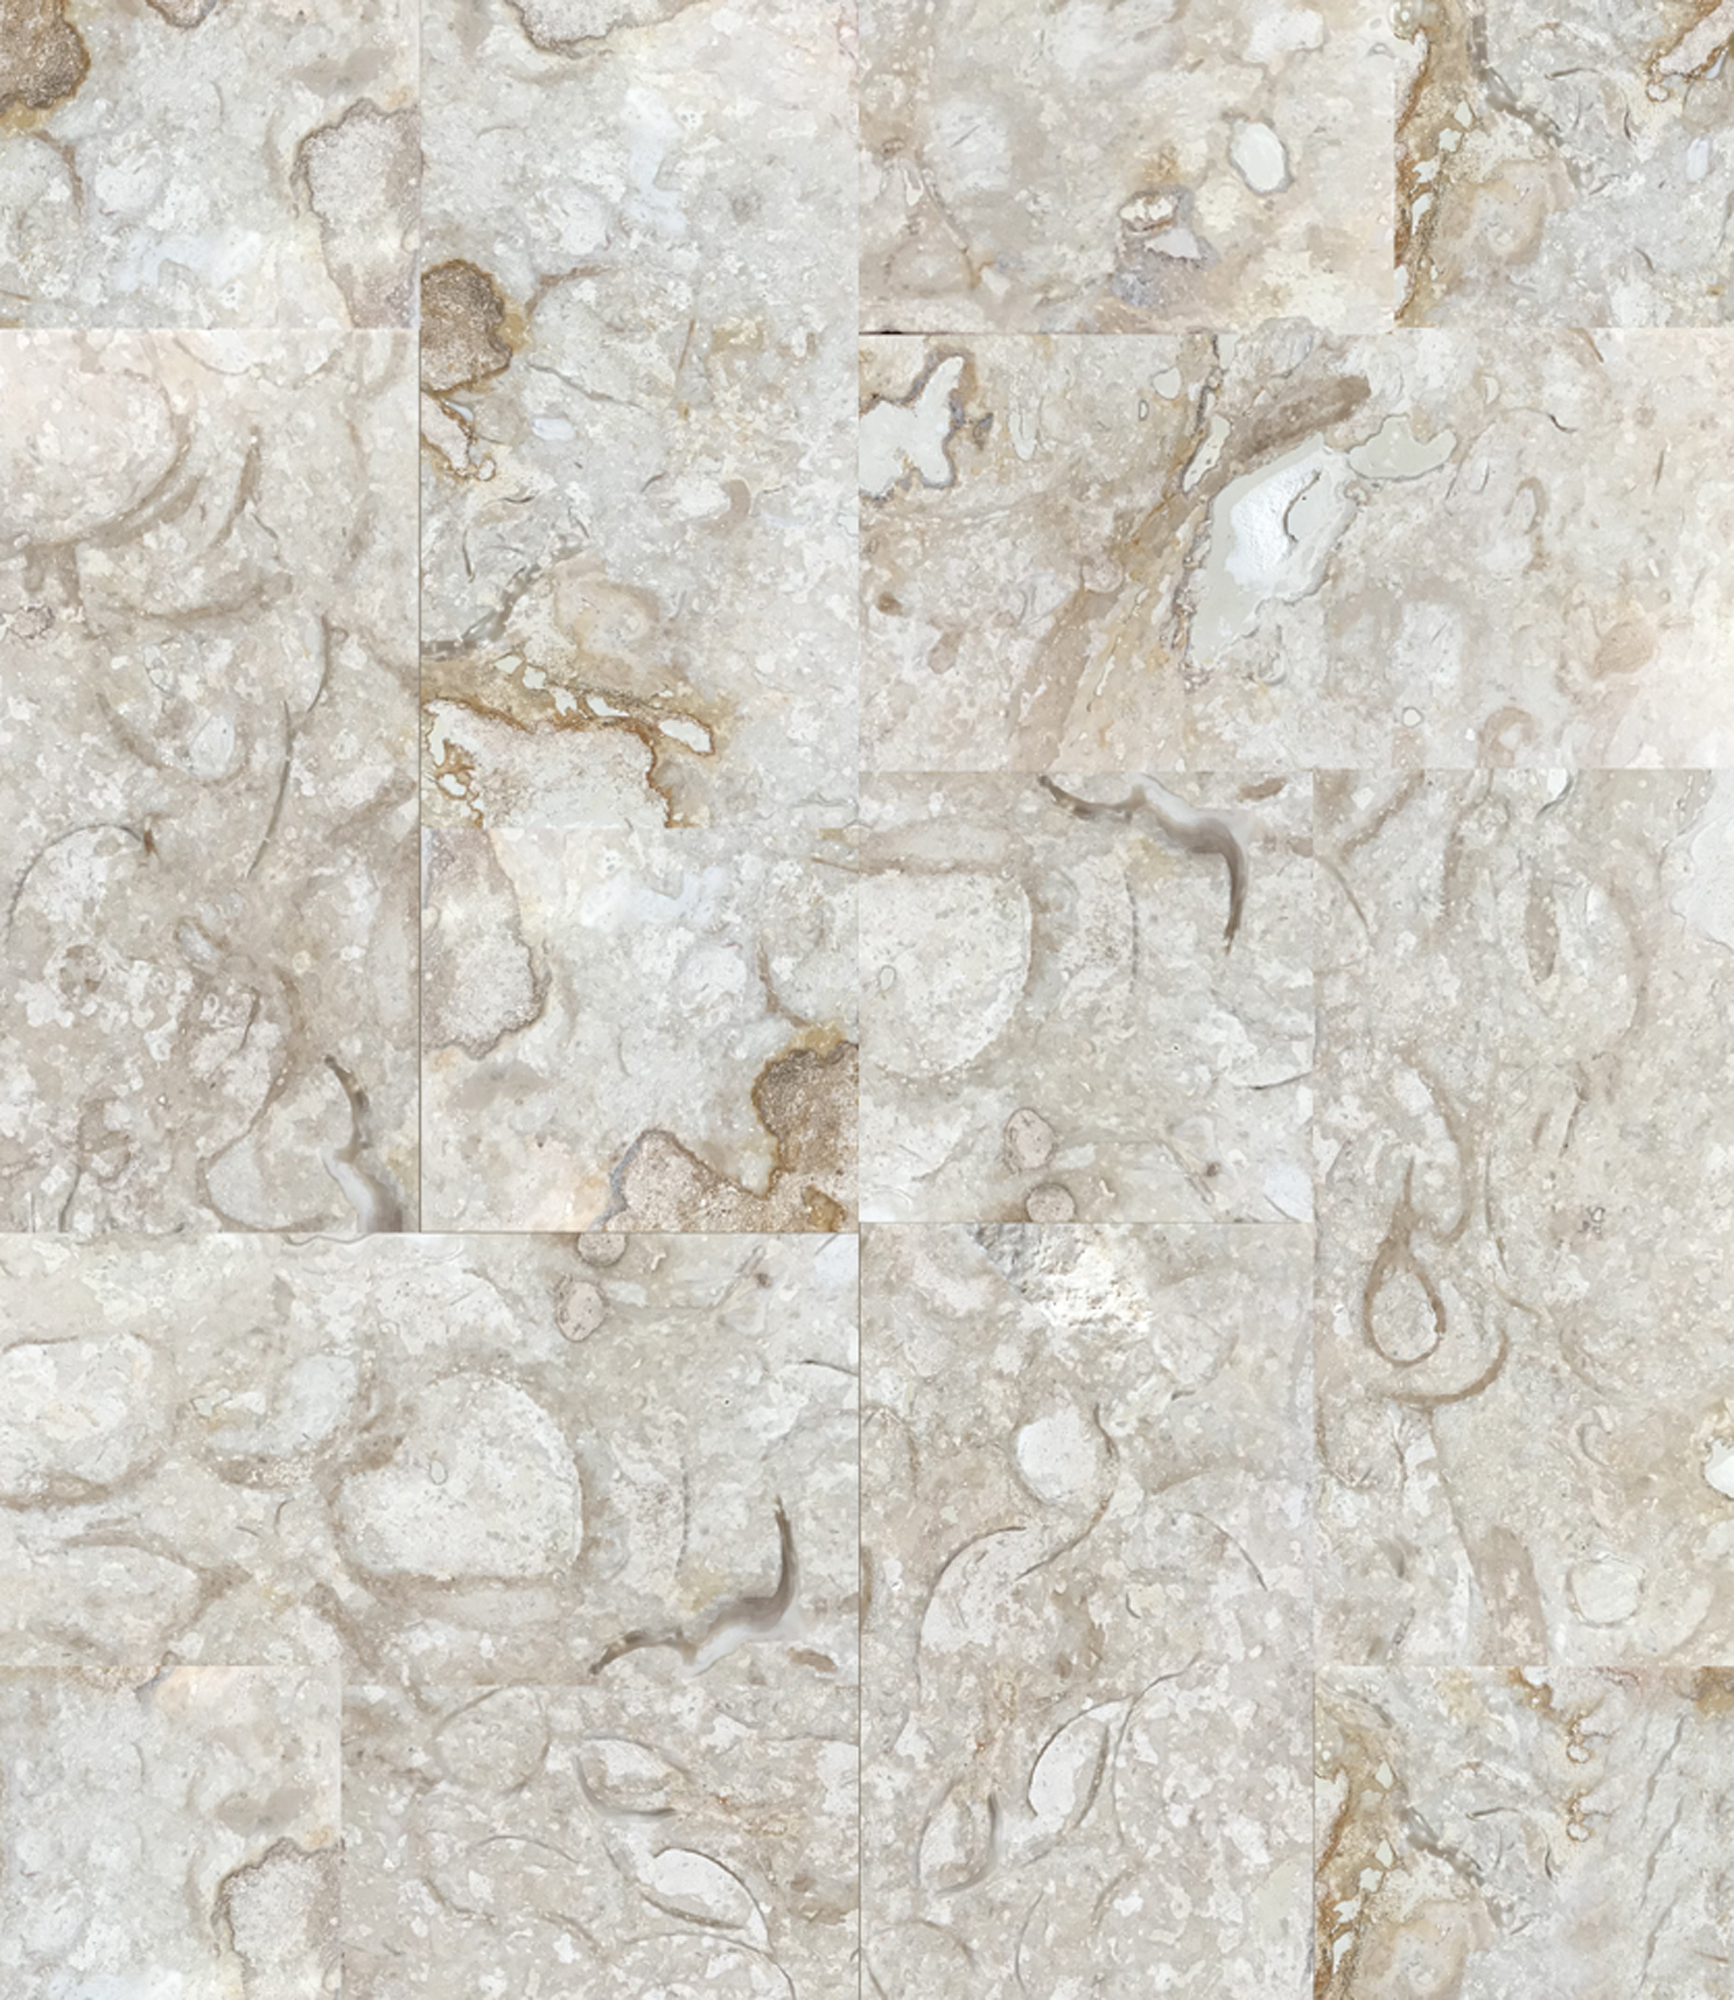 Calico Limestone - This stone is unique to Bella Dura.Calico Limestone has a light beige background with splotchy random shapes, much like water spills, ranging in color from light brown, to gold, to creamy which is lighter than the background. The colors will work anywhere a light travertine would be used.Calico is a very hard stone comparable to most marbles (between 6 and 7 on ths Mohs scale. It is very dense with a low absorption and is frost resistant. It is suitable for almost all uses from paving for heavy traffic areas and high relief carving.The finishes available are honed, polished, bush hammered, and sand blasted.